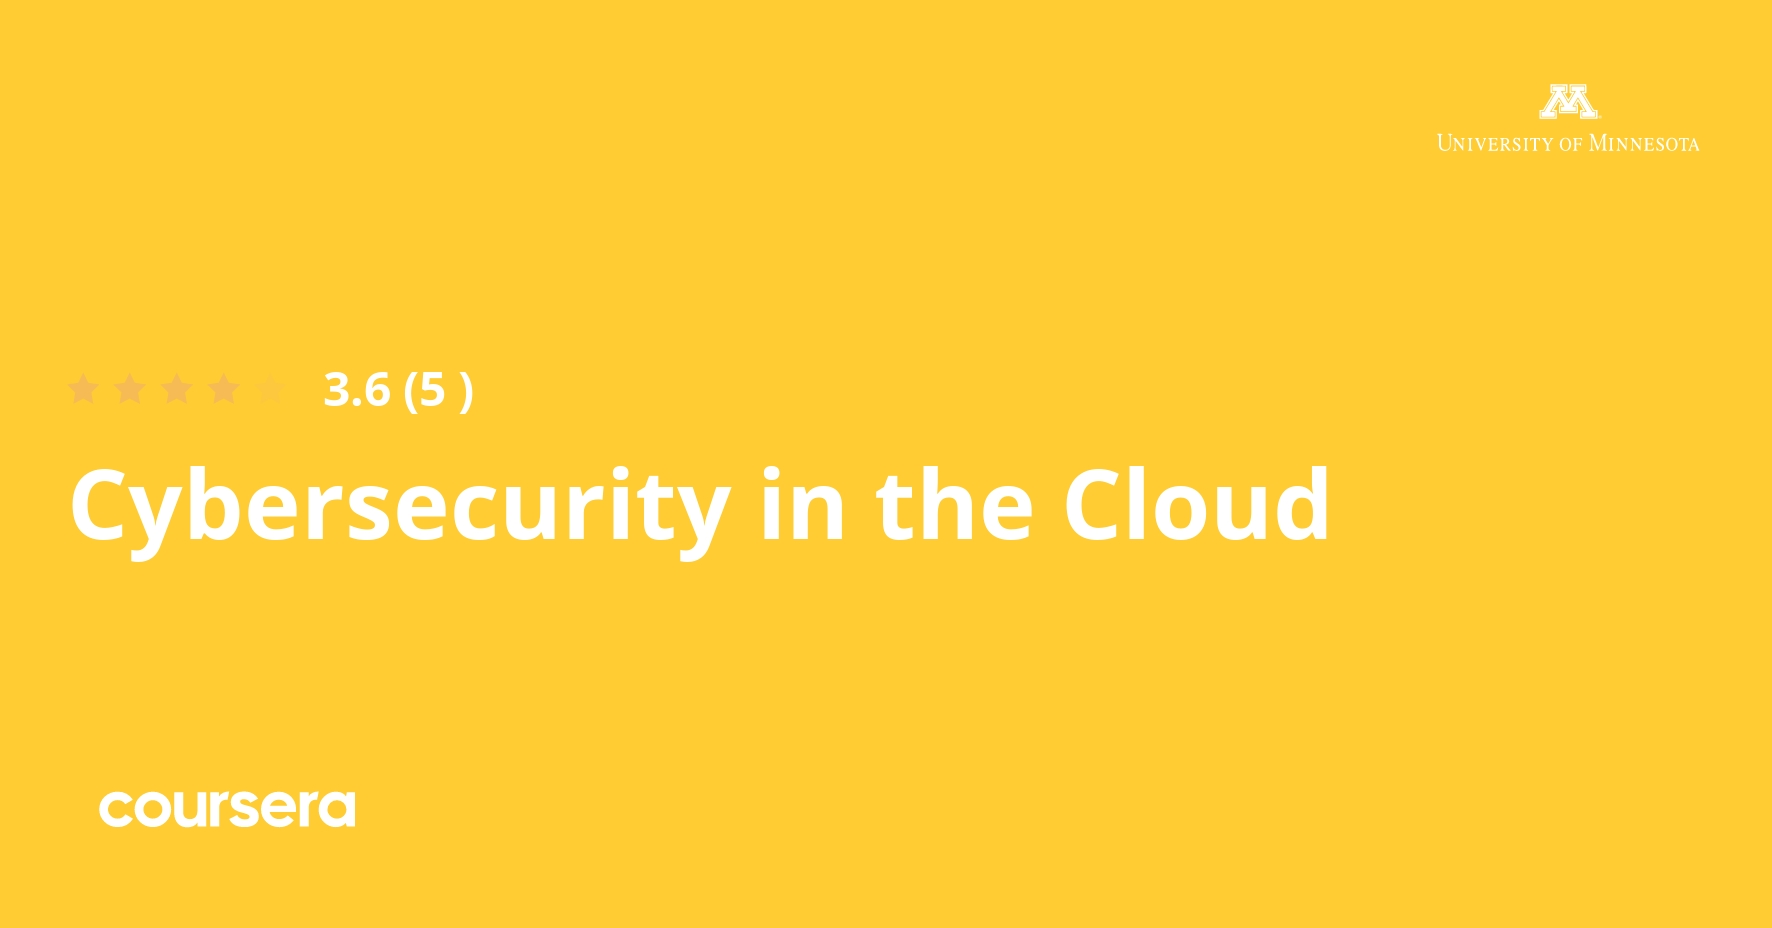 Cybersecurity in the Cloud Specialization